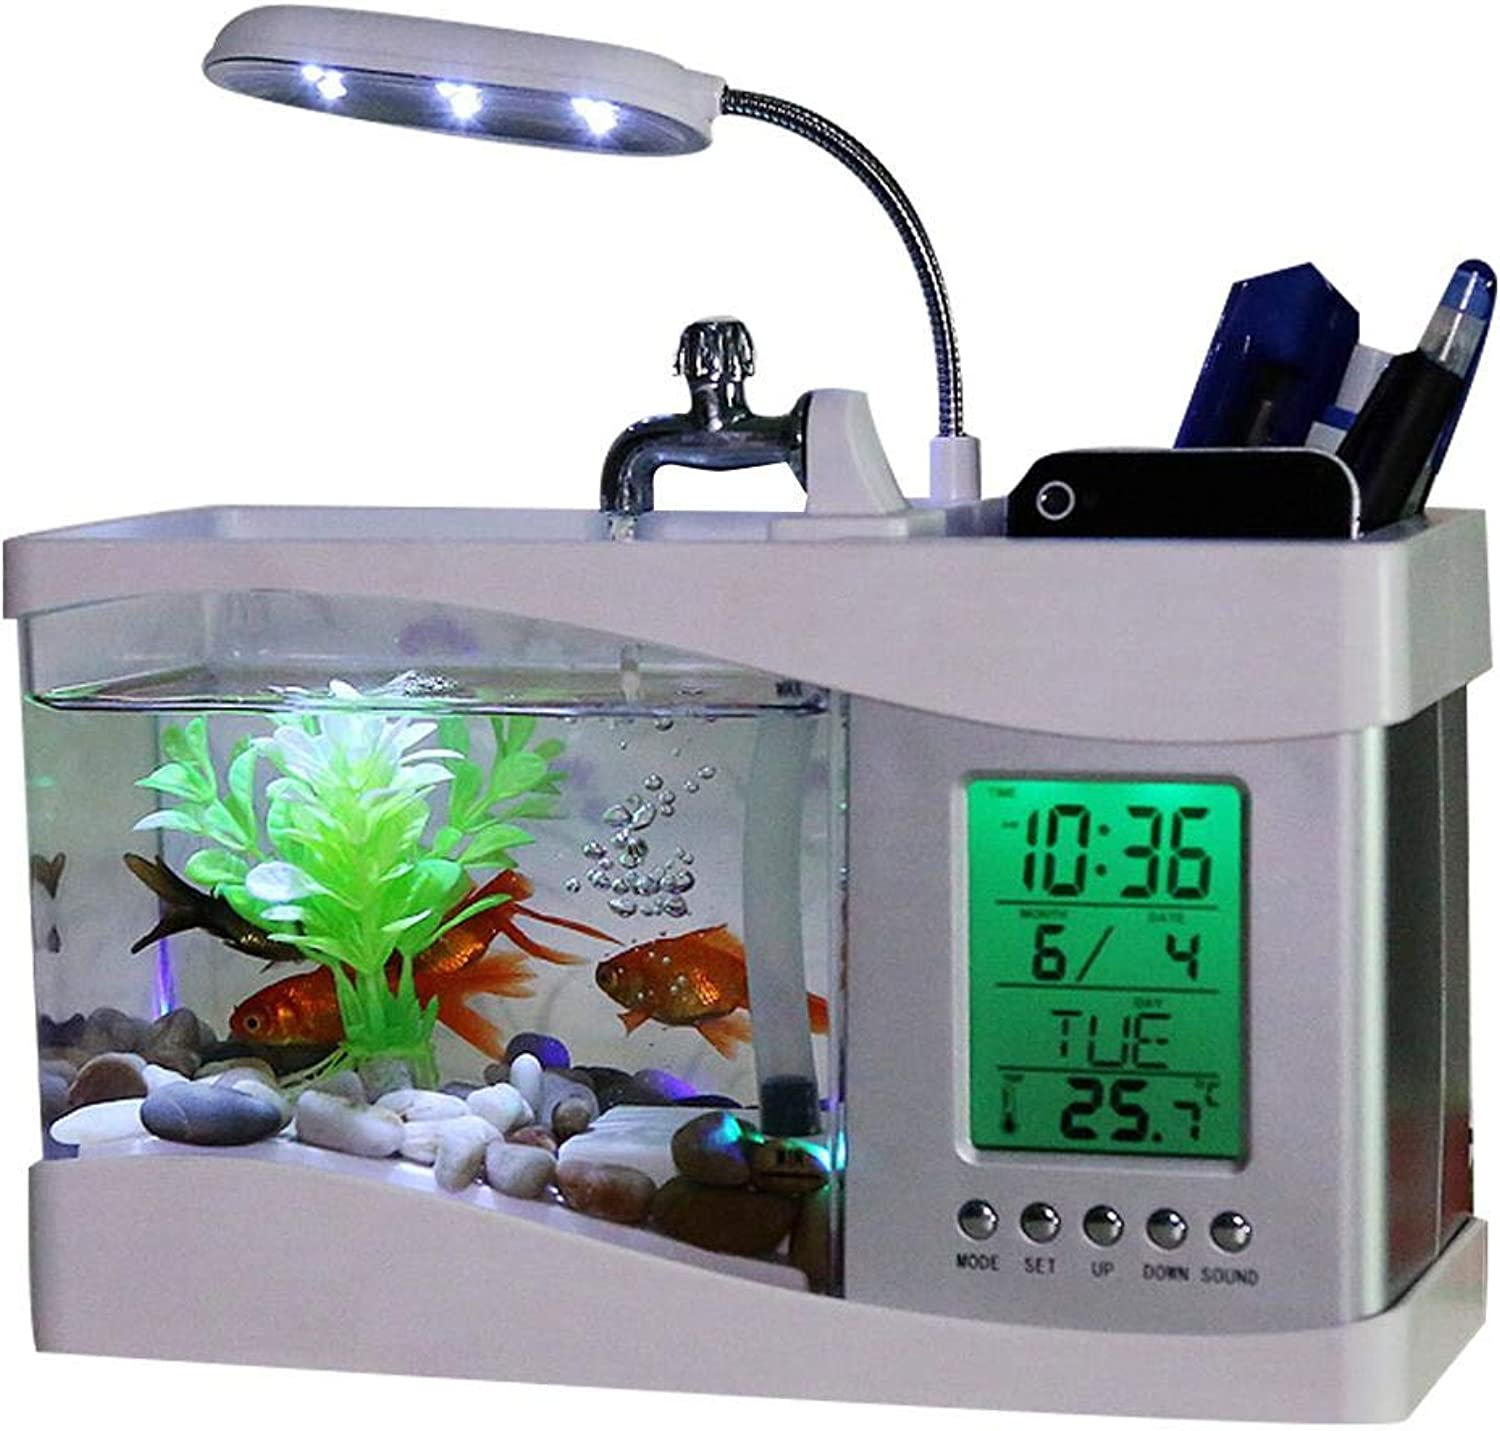 Fish Vegetables Water Garden Ecological Acrylic Fish Tank Grows Plants with Led Clock Gardening Gifts Mini Aquaponic Ecosystem Symbiotic Plants